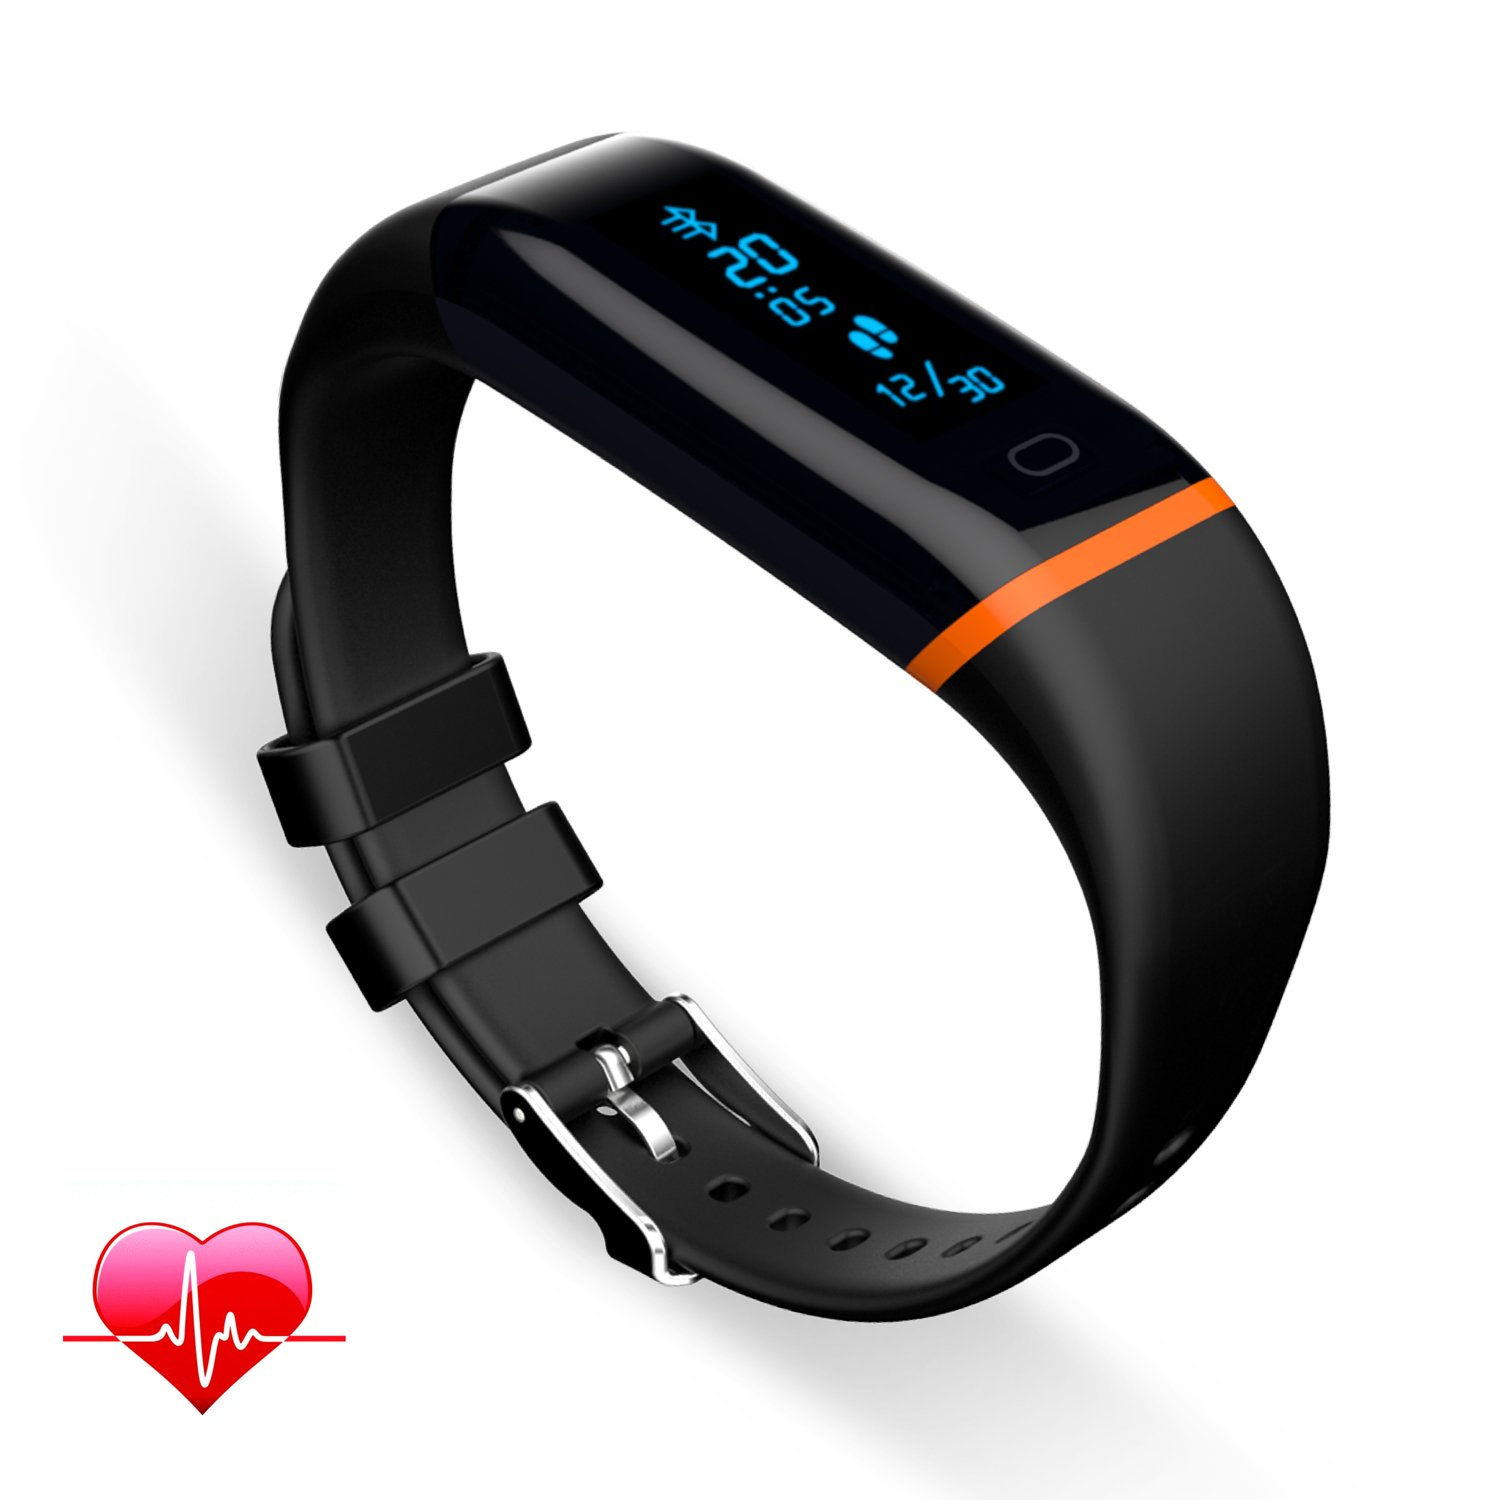 waterproof latest custom silicone screen tracker band cful monitor smart product colorful activity wristband fitness bands bracelet watch rate watches heart